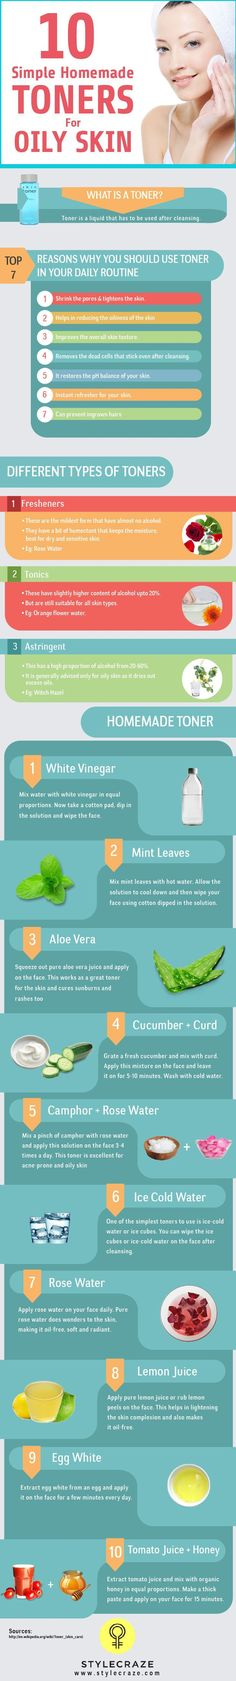 Toning for oily skin is a very important part in skin care regime.